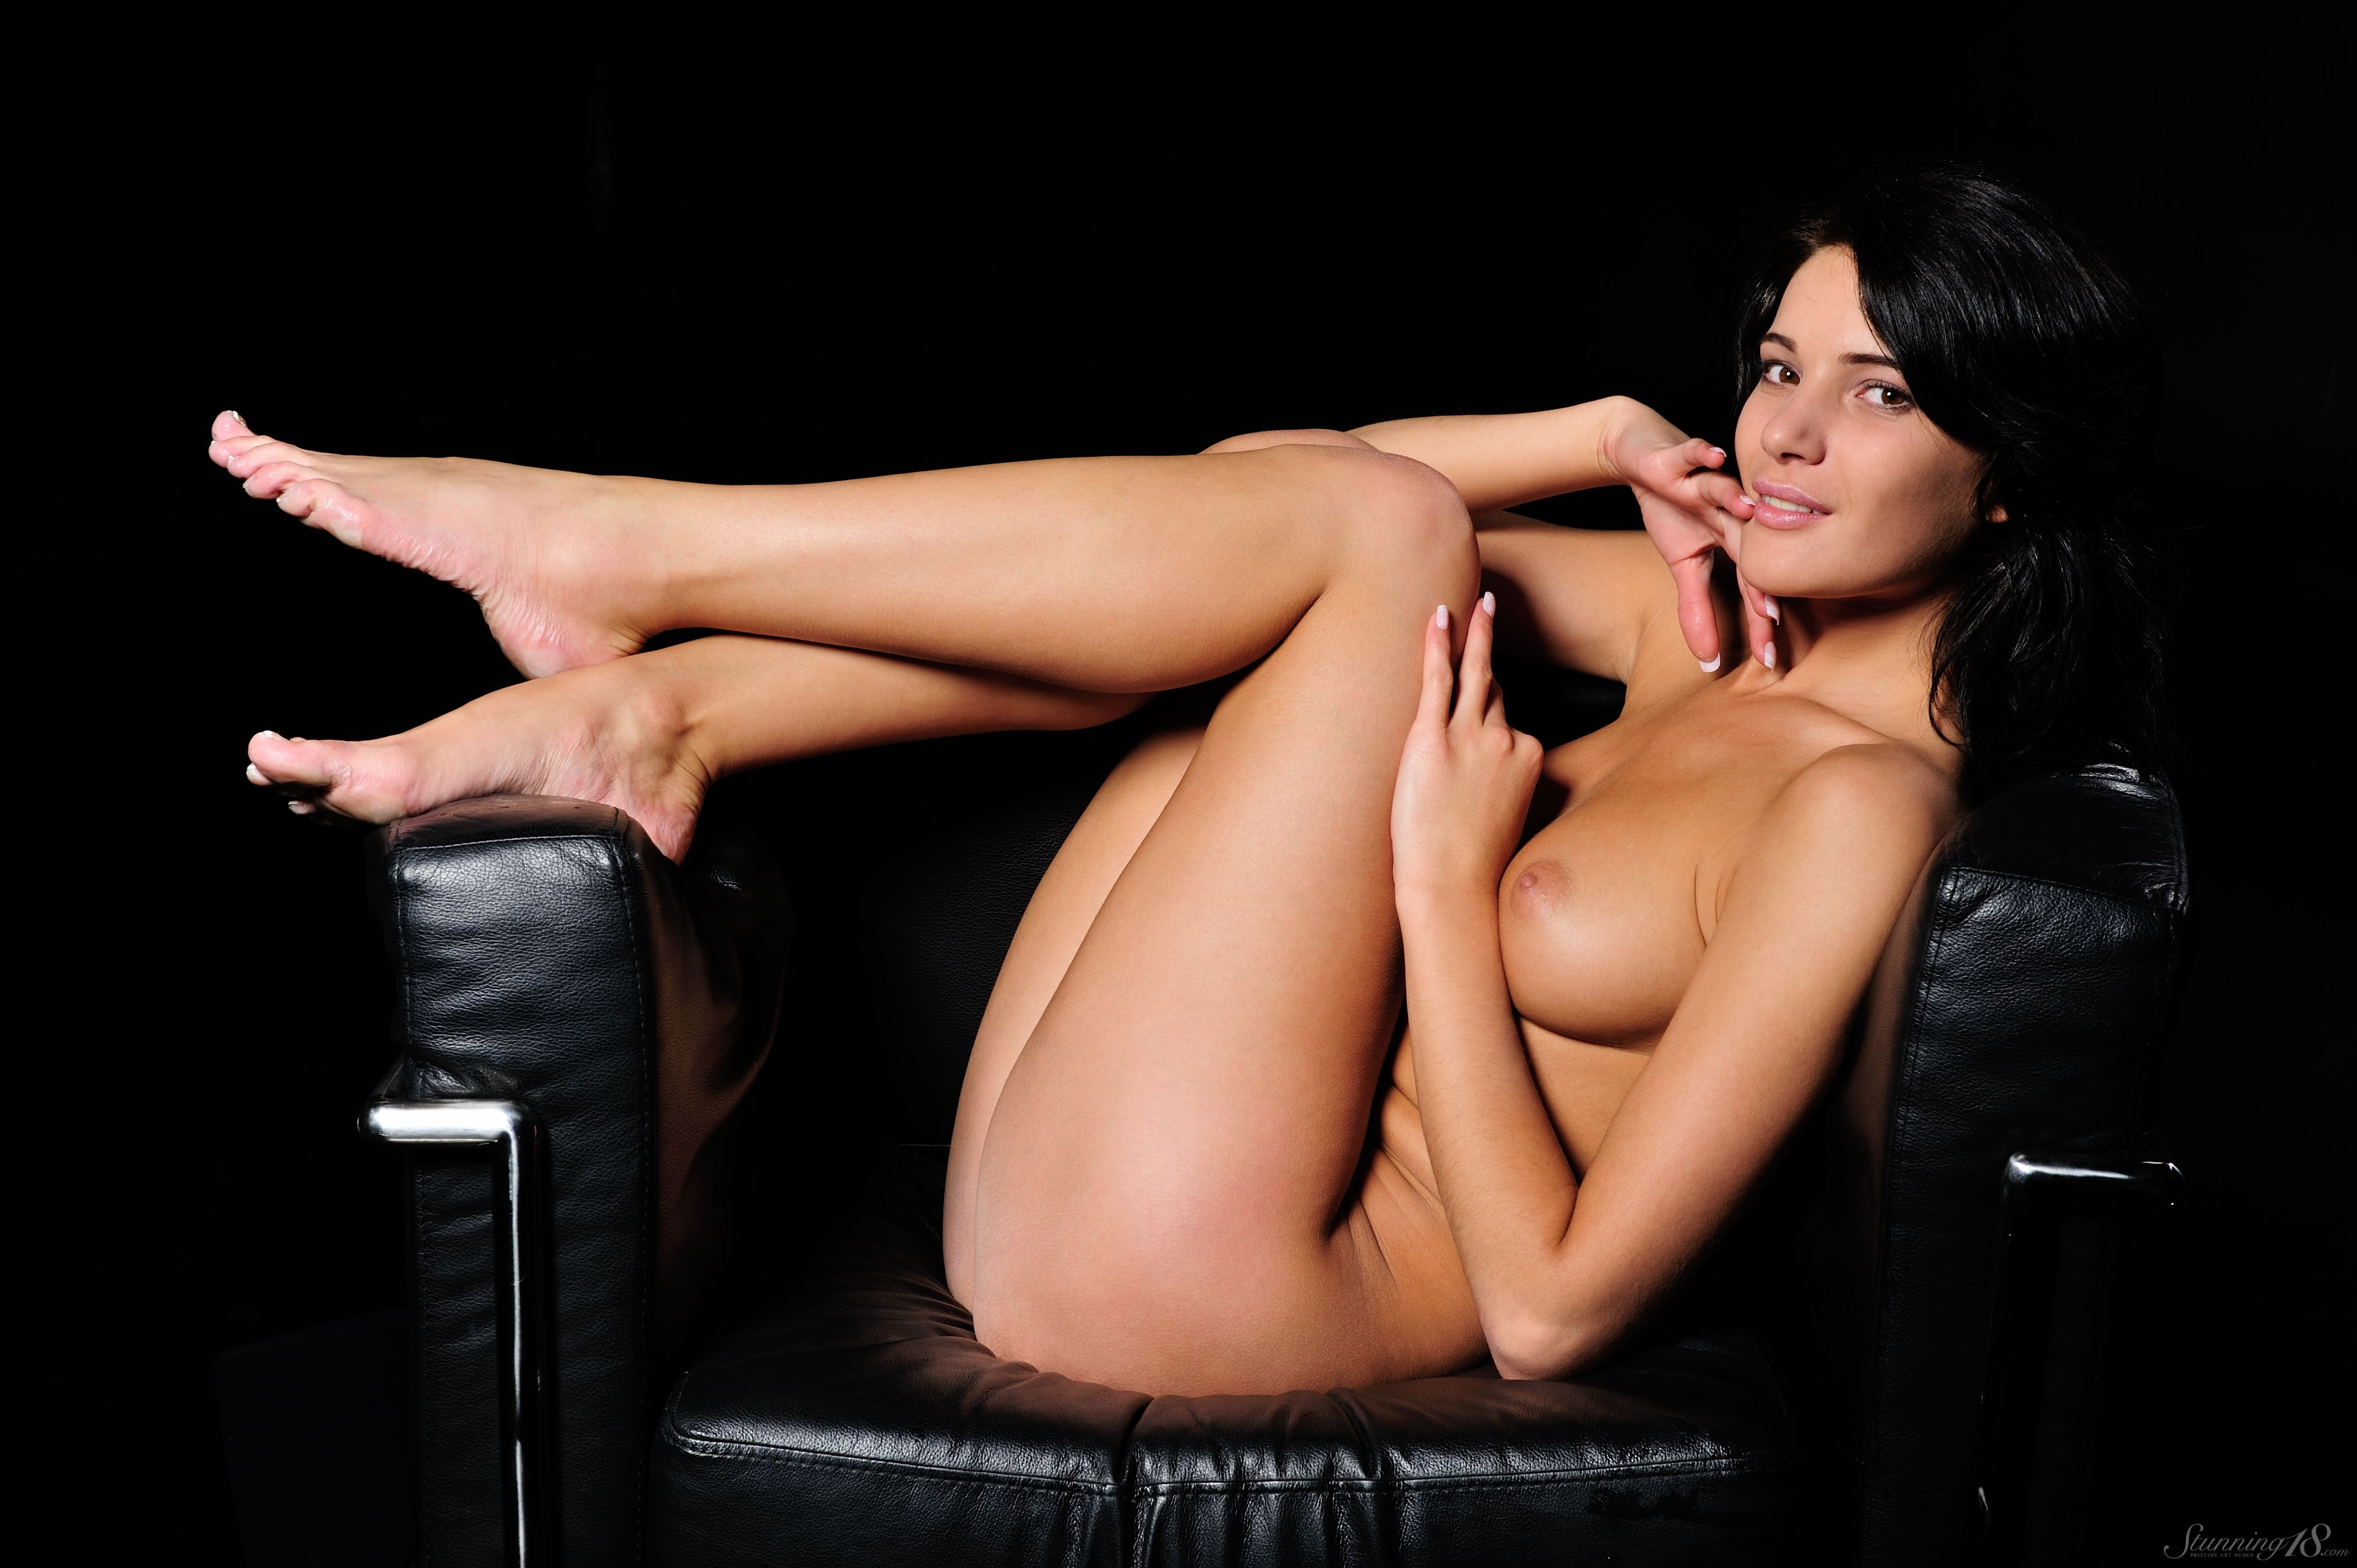 Best Adult Websites  Looking for Sex with Personal Ads